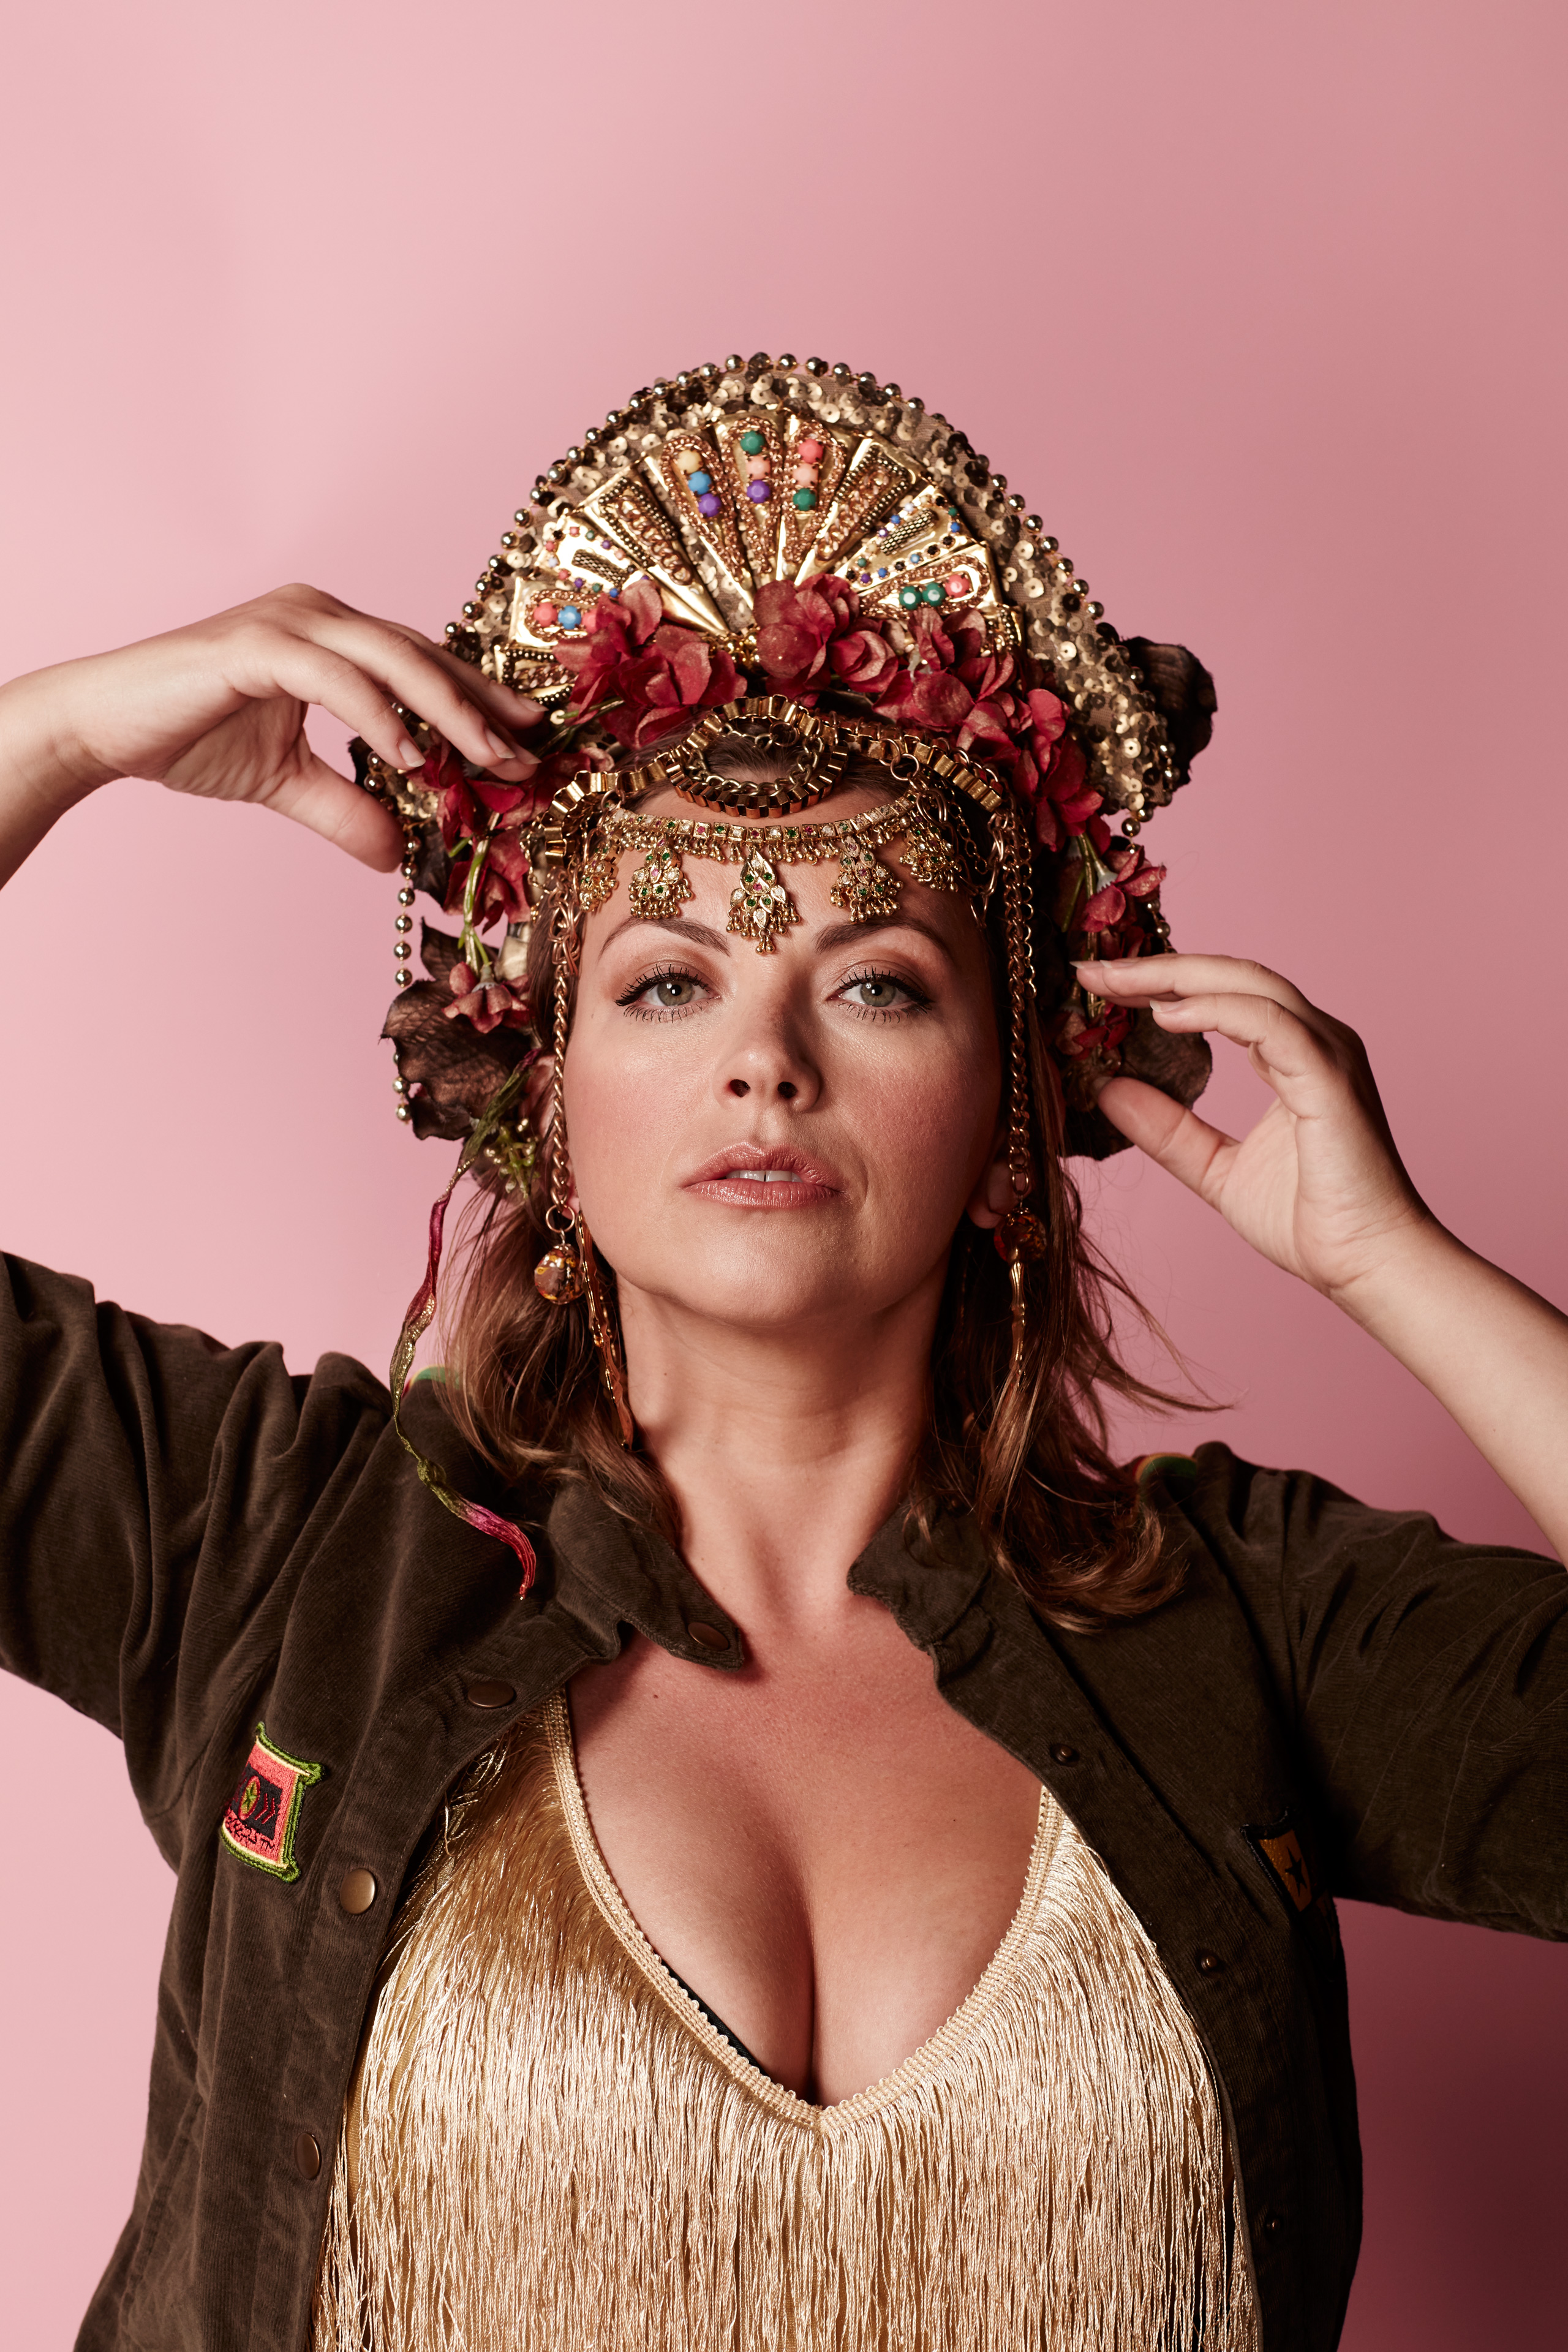 Charlotte First Night >> Inside the Pop Dungeon: Charlotte Church is on the cover of Loud And Quiet 86 – in stores ...